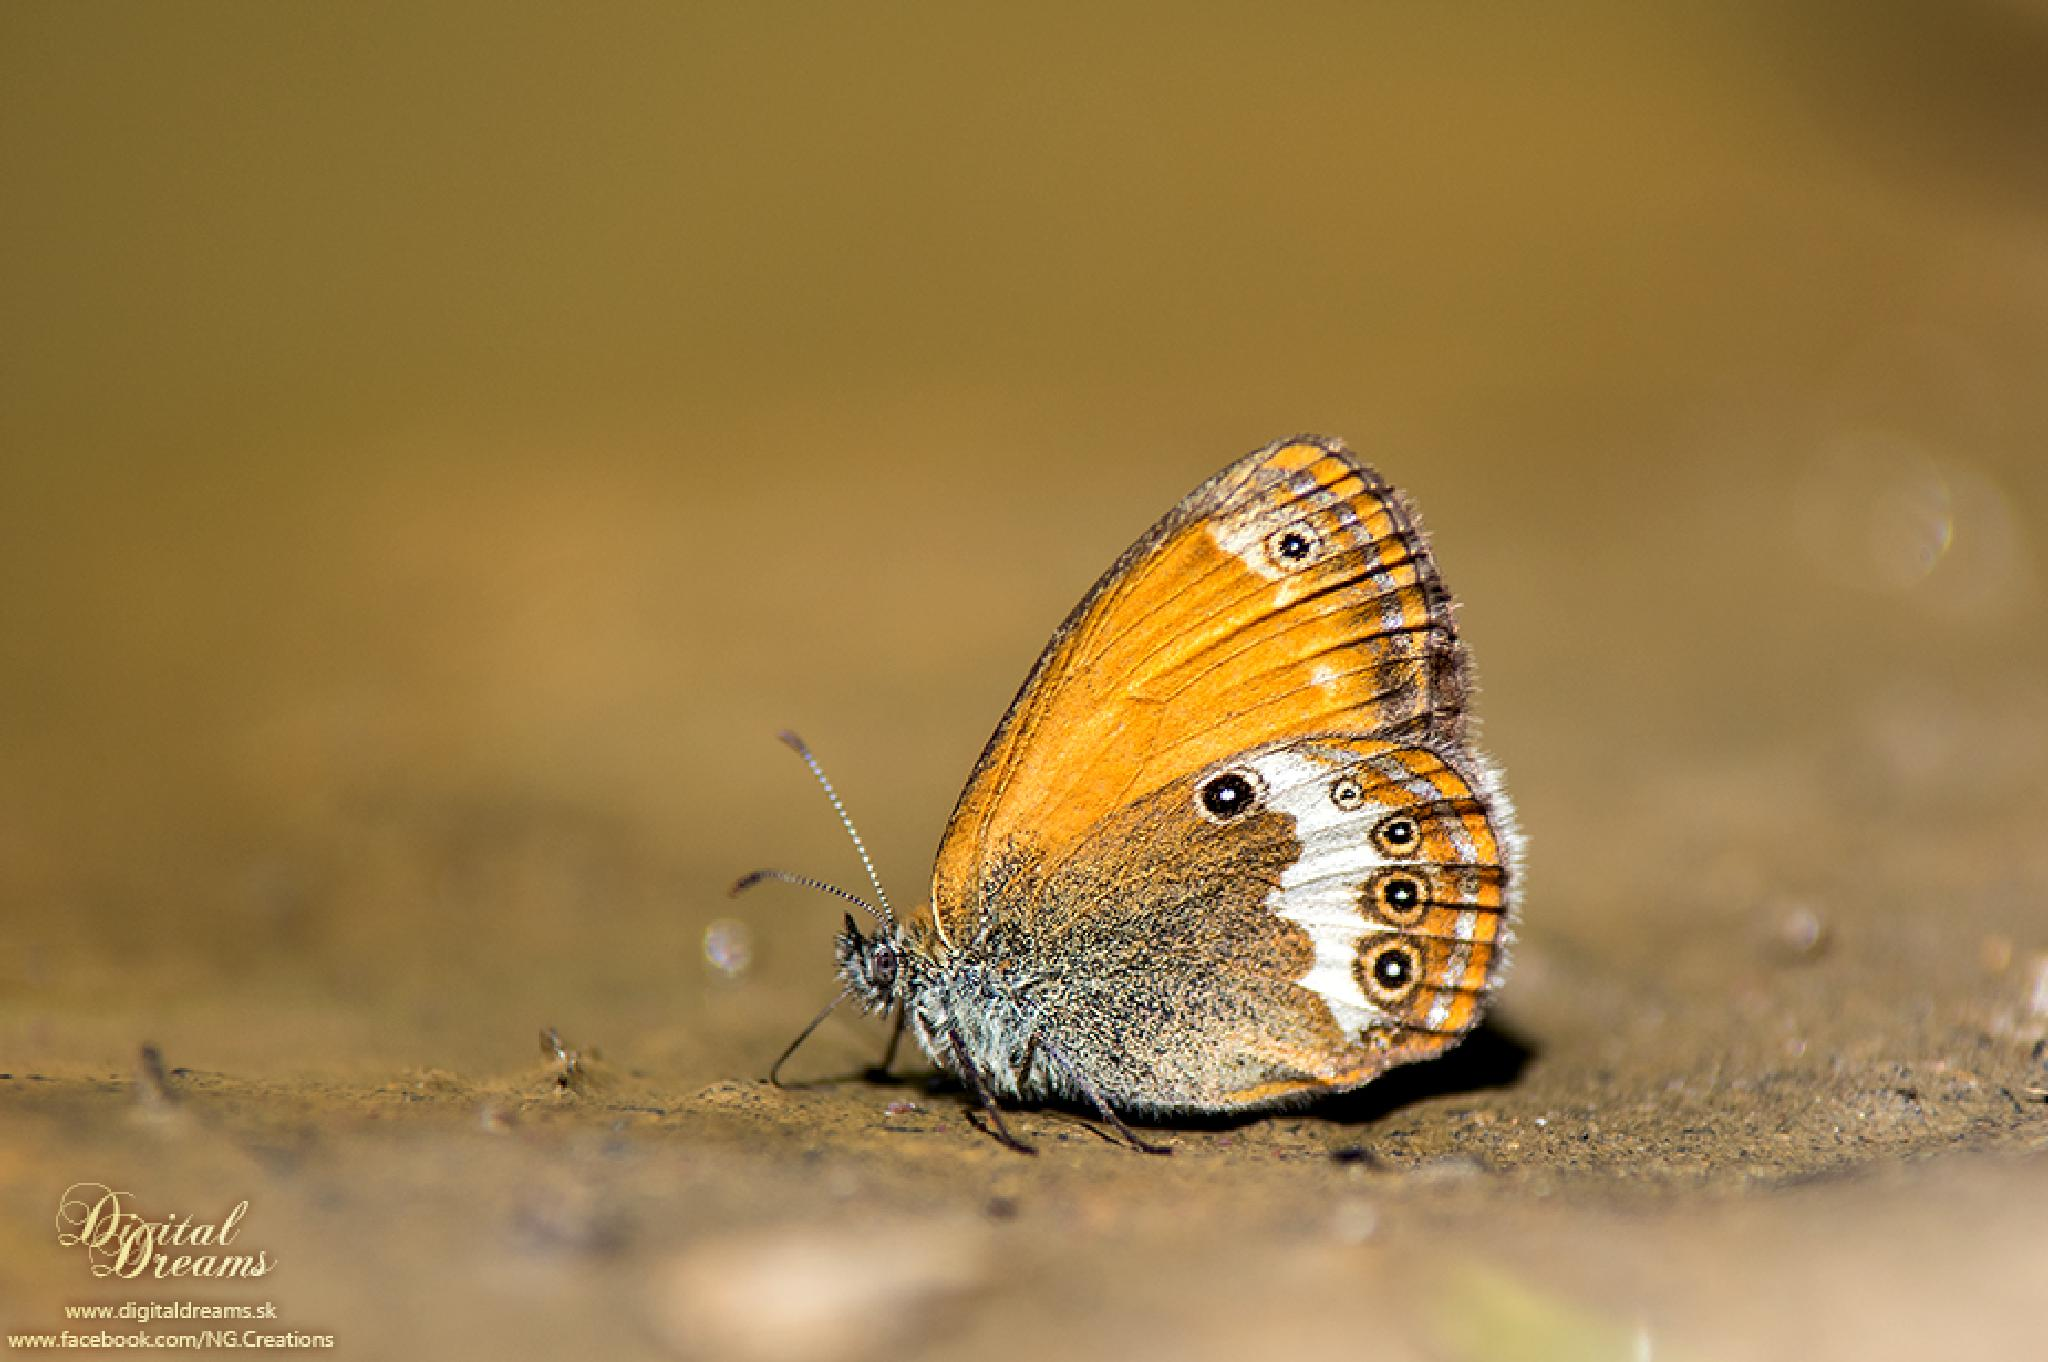 Thirsty butterfly by digitaldreams_sk